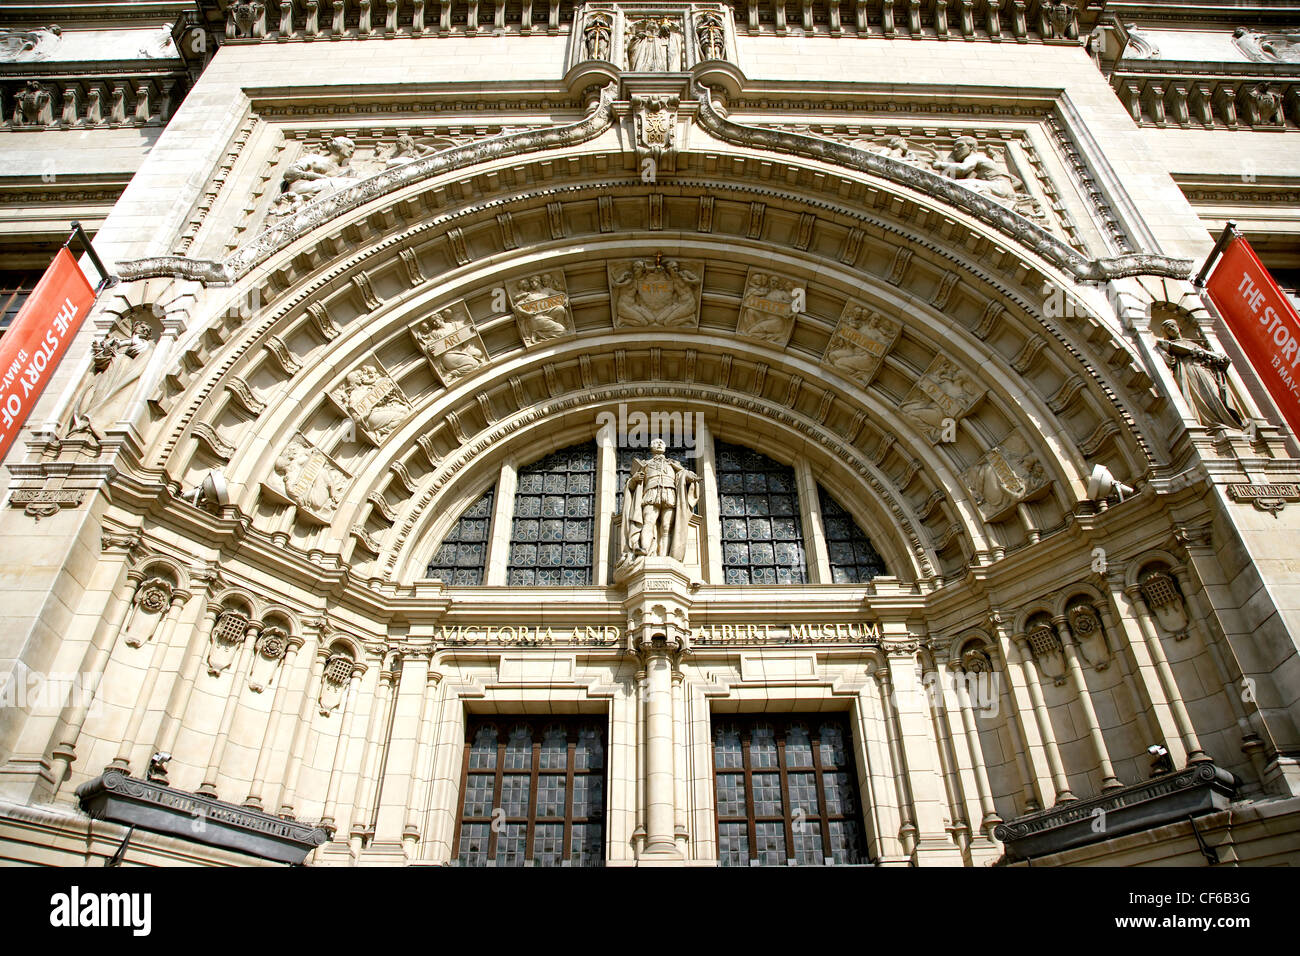 The arched doorway to The Victoria and Albert Museum in South Kensington. Stock Photo